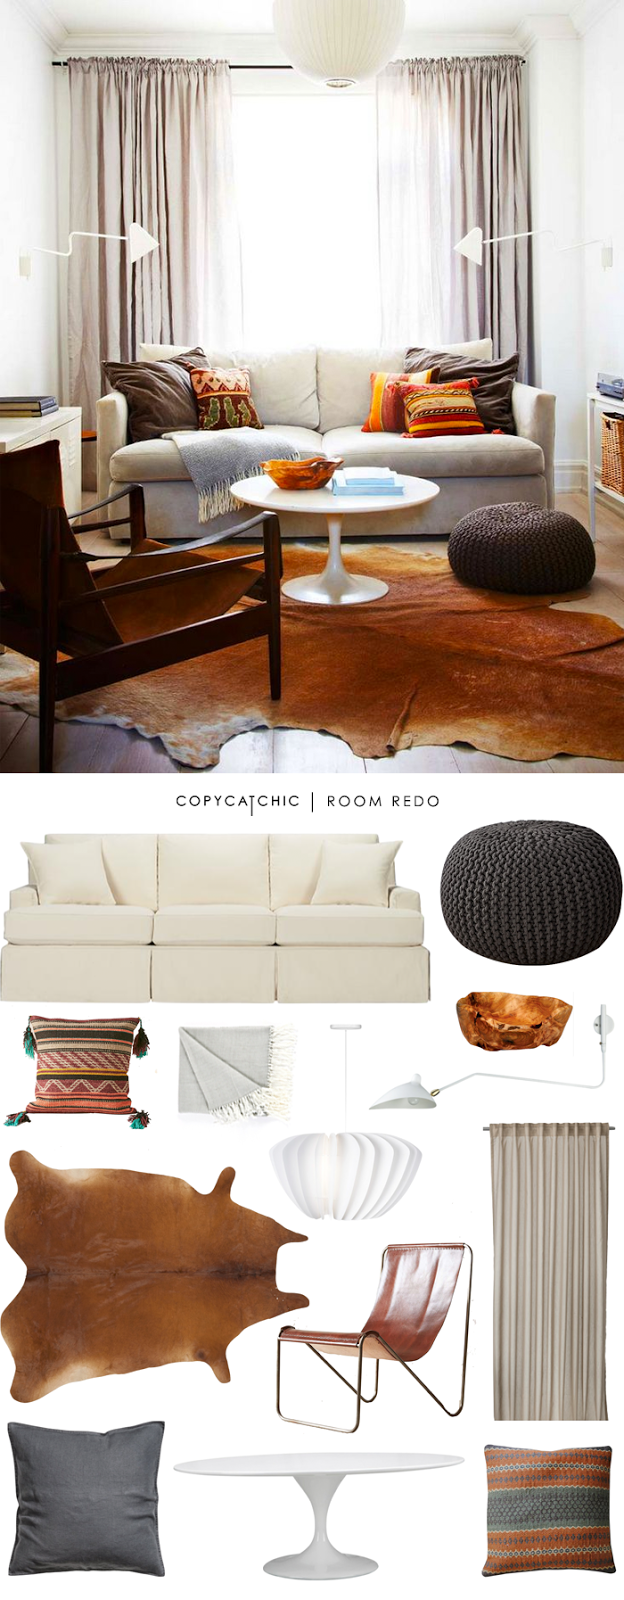 Living Rooms Archives Page 27 Of 59 Copycatchic